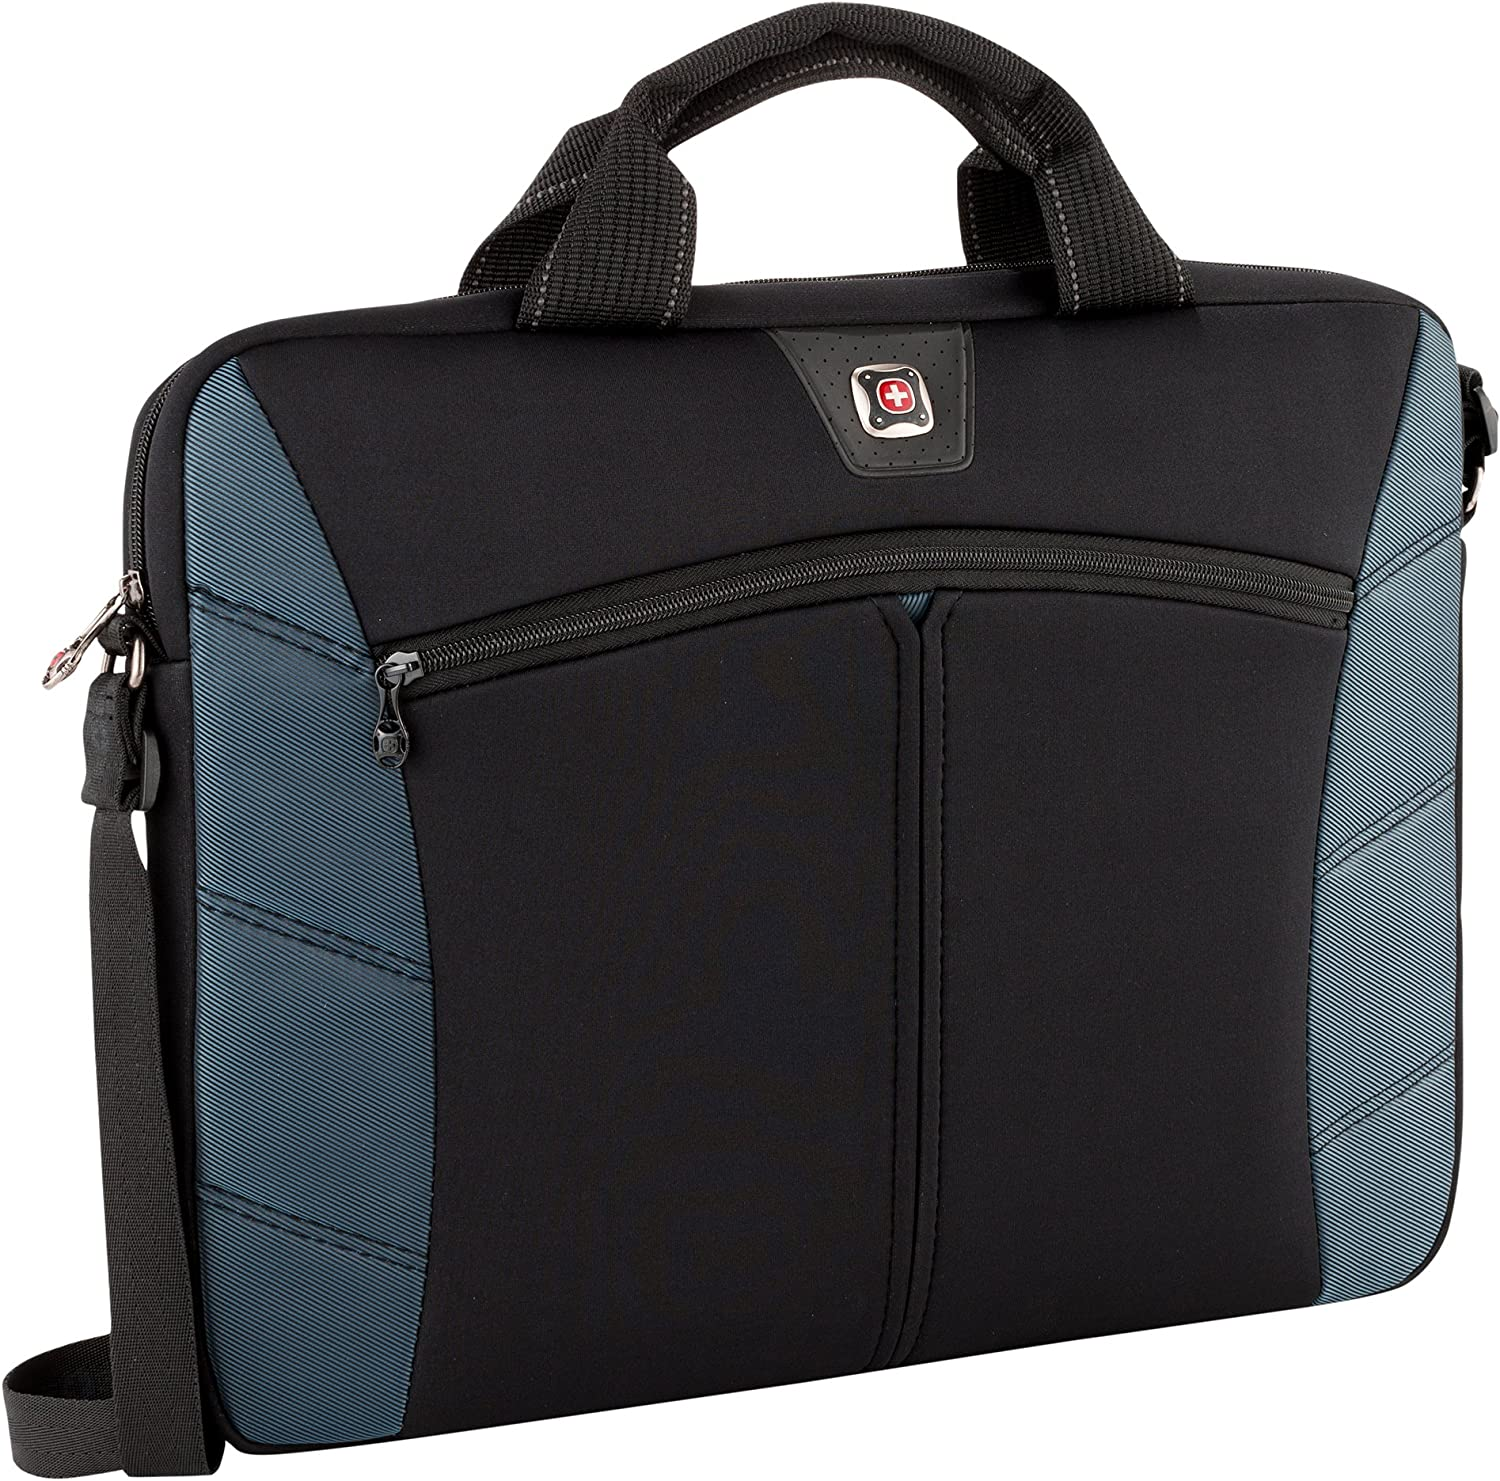 SwissGear 17.3-Inch Sherpa Slim Case for Notebook, Black/Blue (GA-7501-06F00)